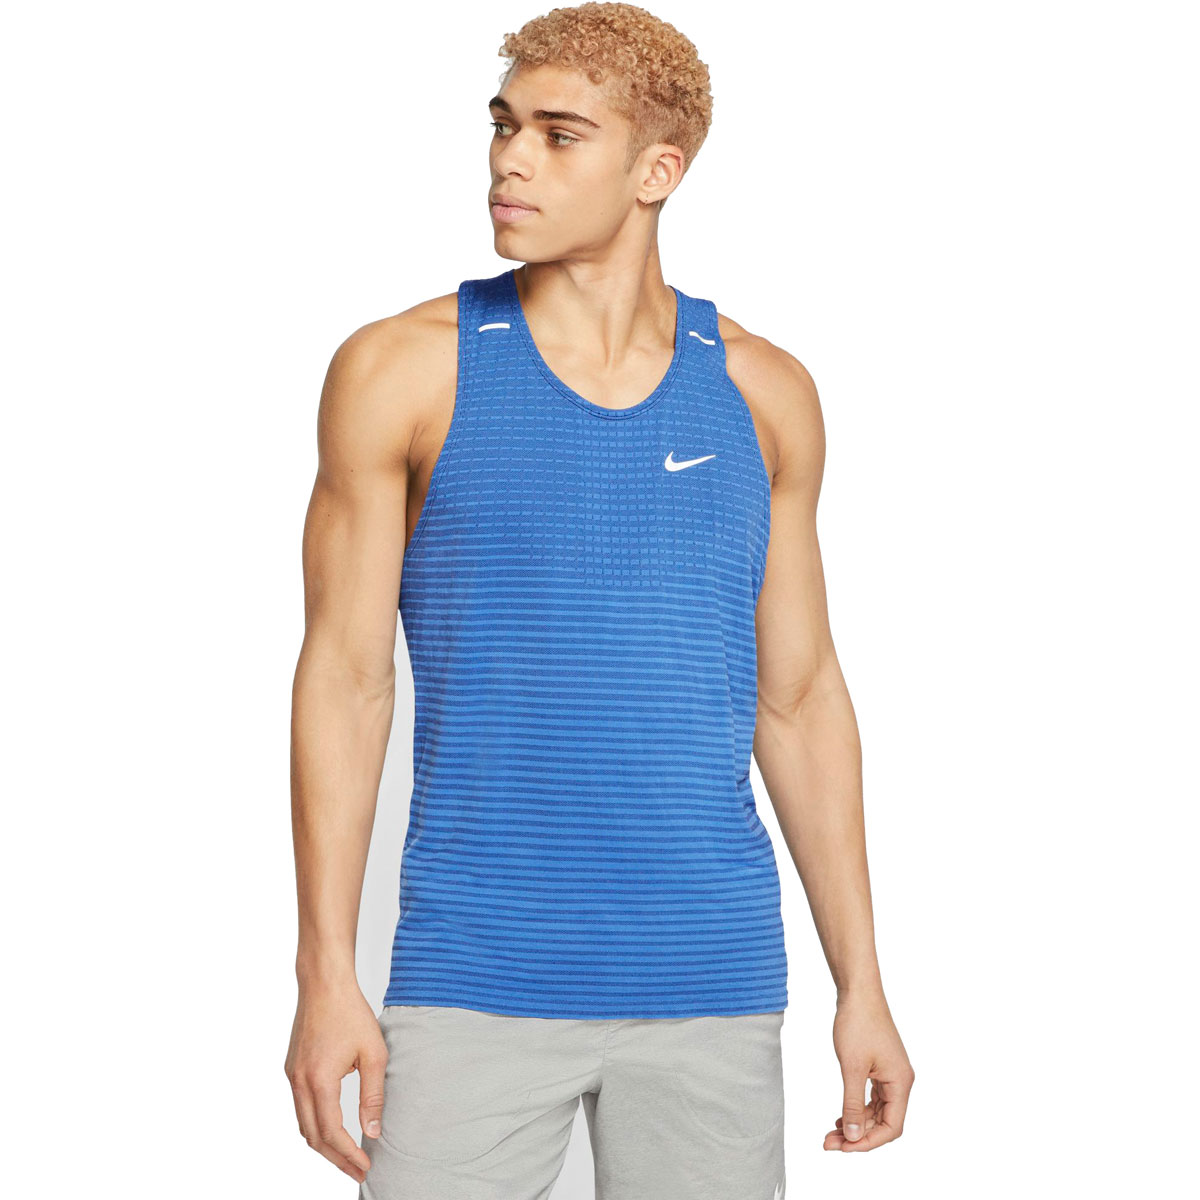 Men's Nike Techknit Ultra Running Tank - Color: Obsidian/Pacific Blue/Reflective Silver - Size: S, Obsidian/Pacific Blue/Reflective Silver, large, image 1